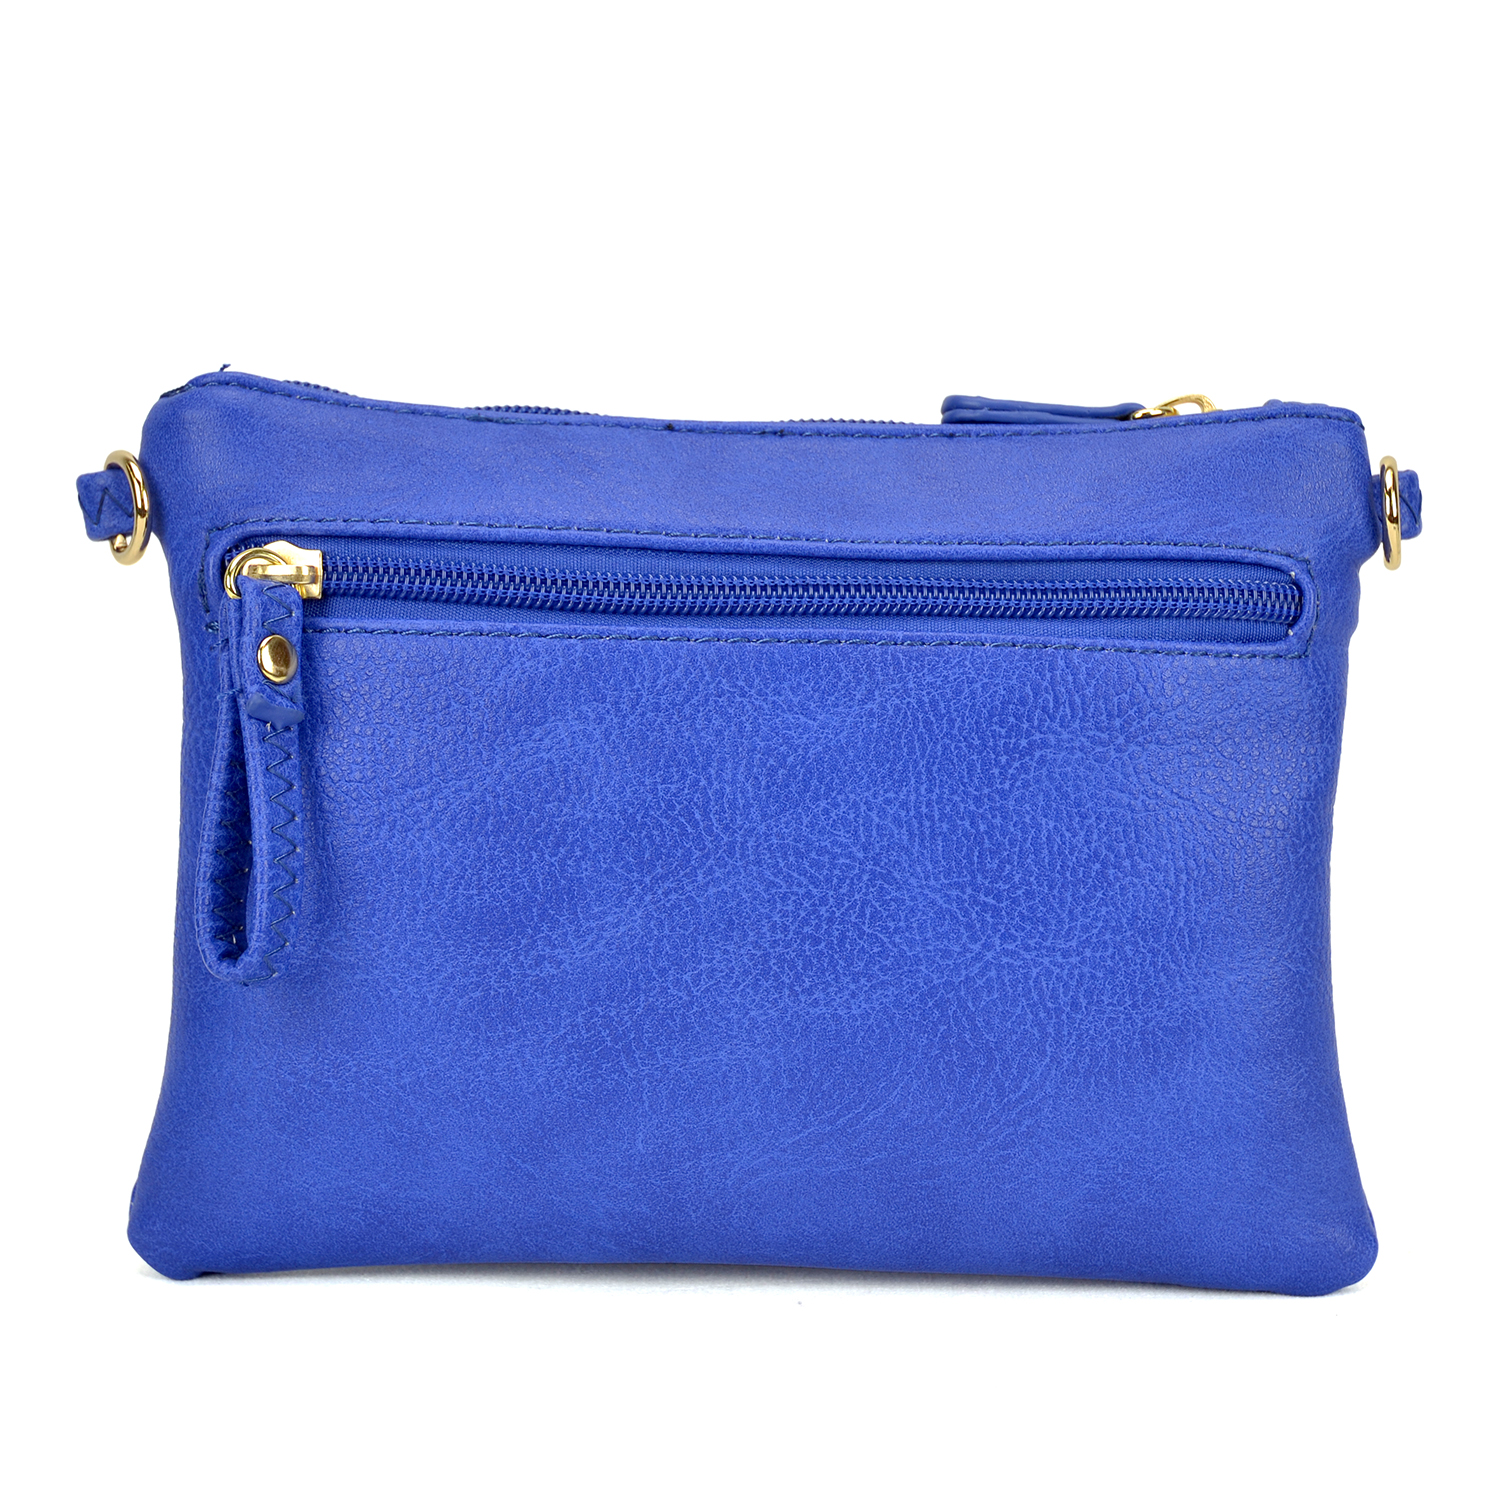 All-In-One Soft Faux Leather Crossbody/ Messenger Clutch Bag /Wristlet